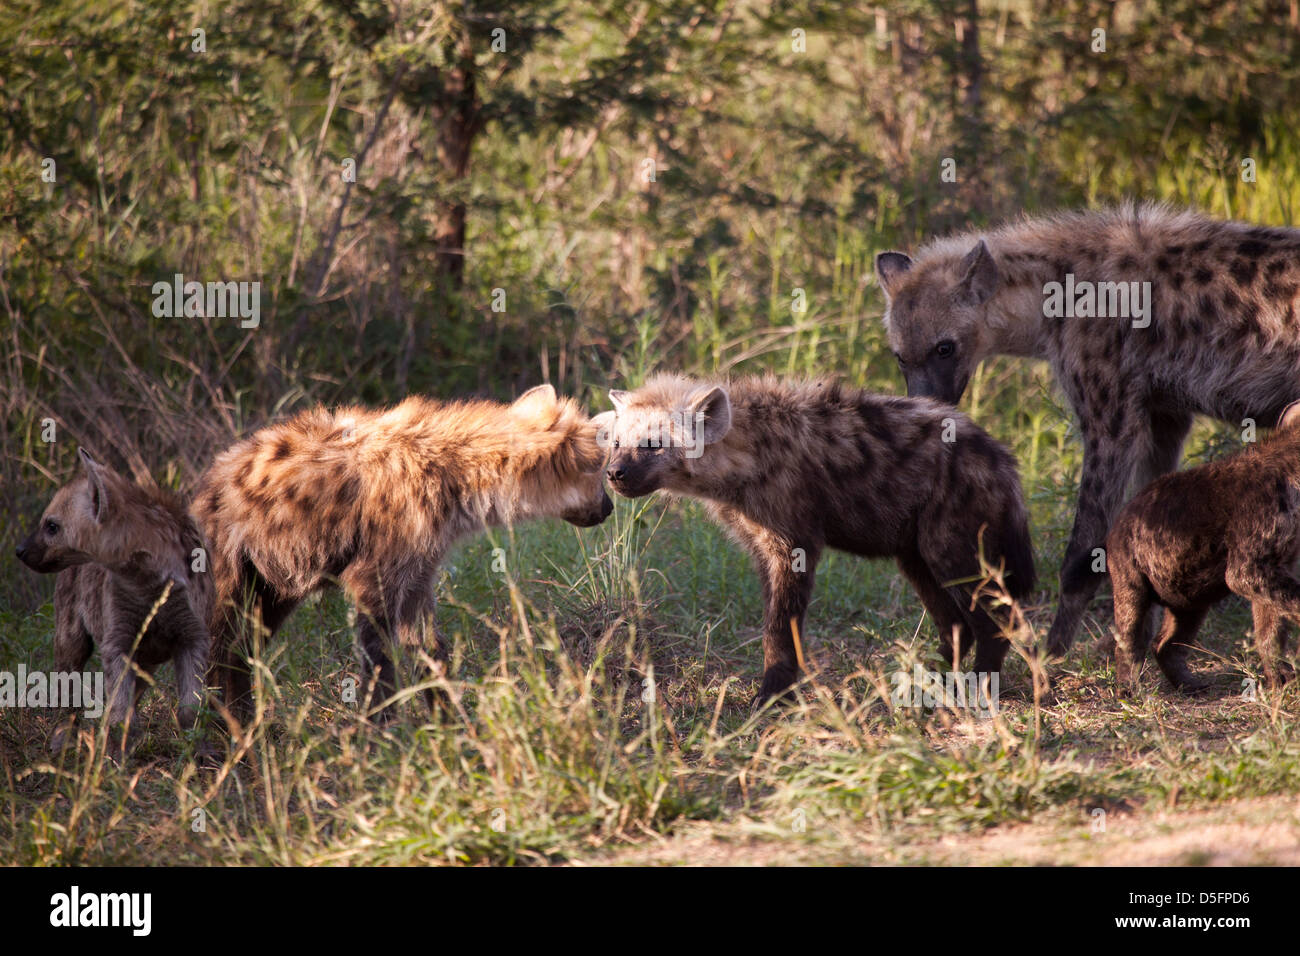 Cubs fighting - Stock Image